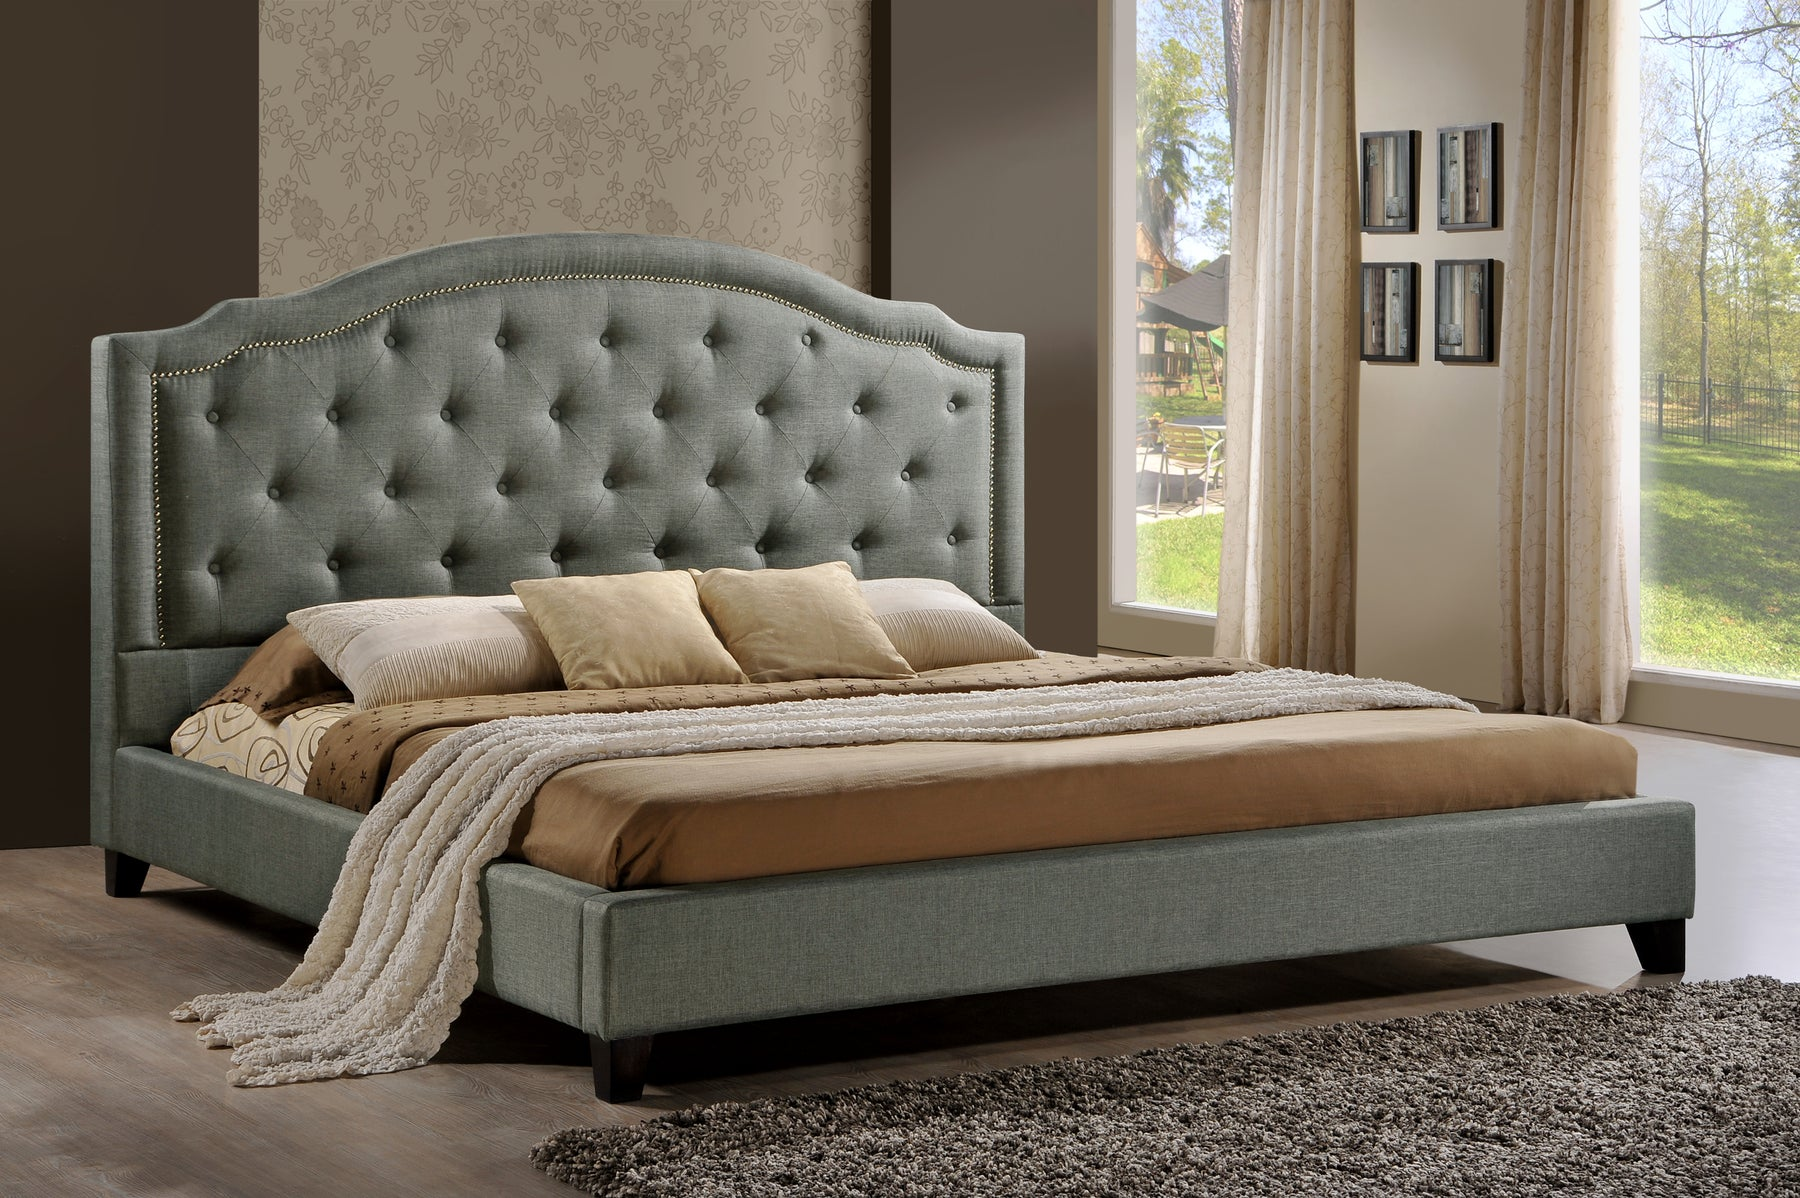 Beds MHB Buying Guide